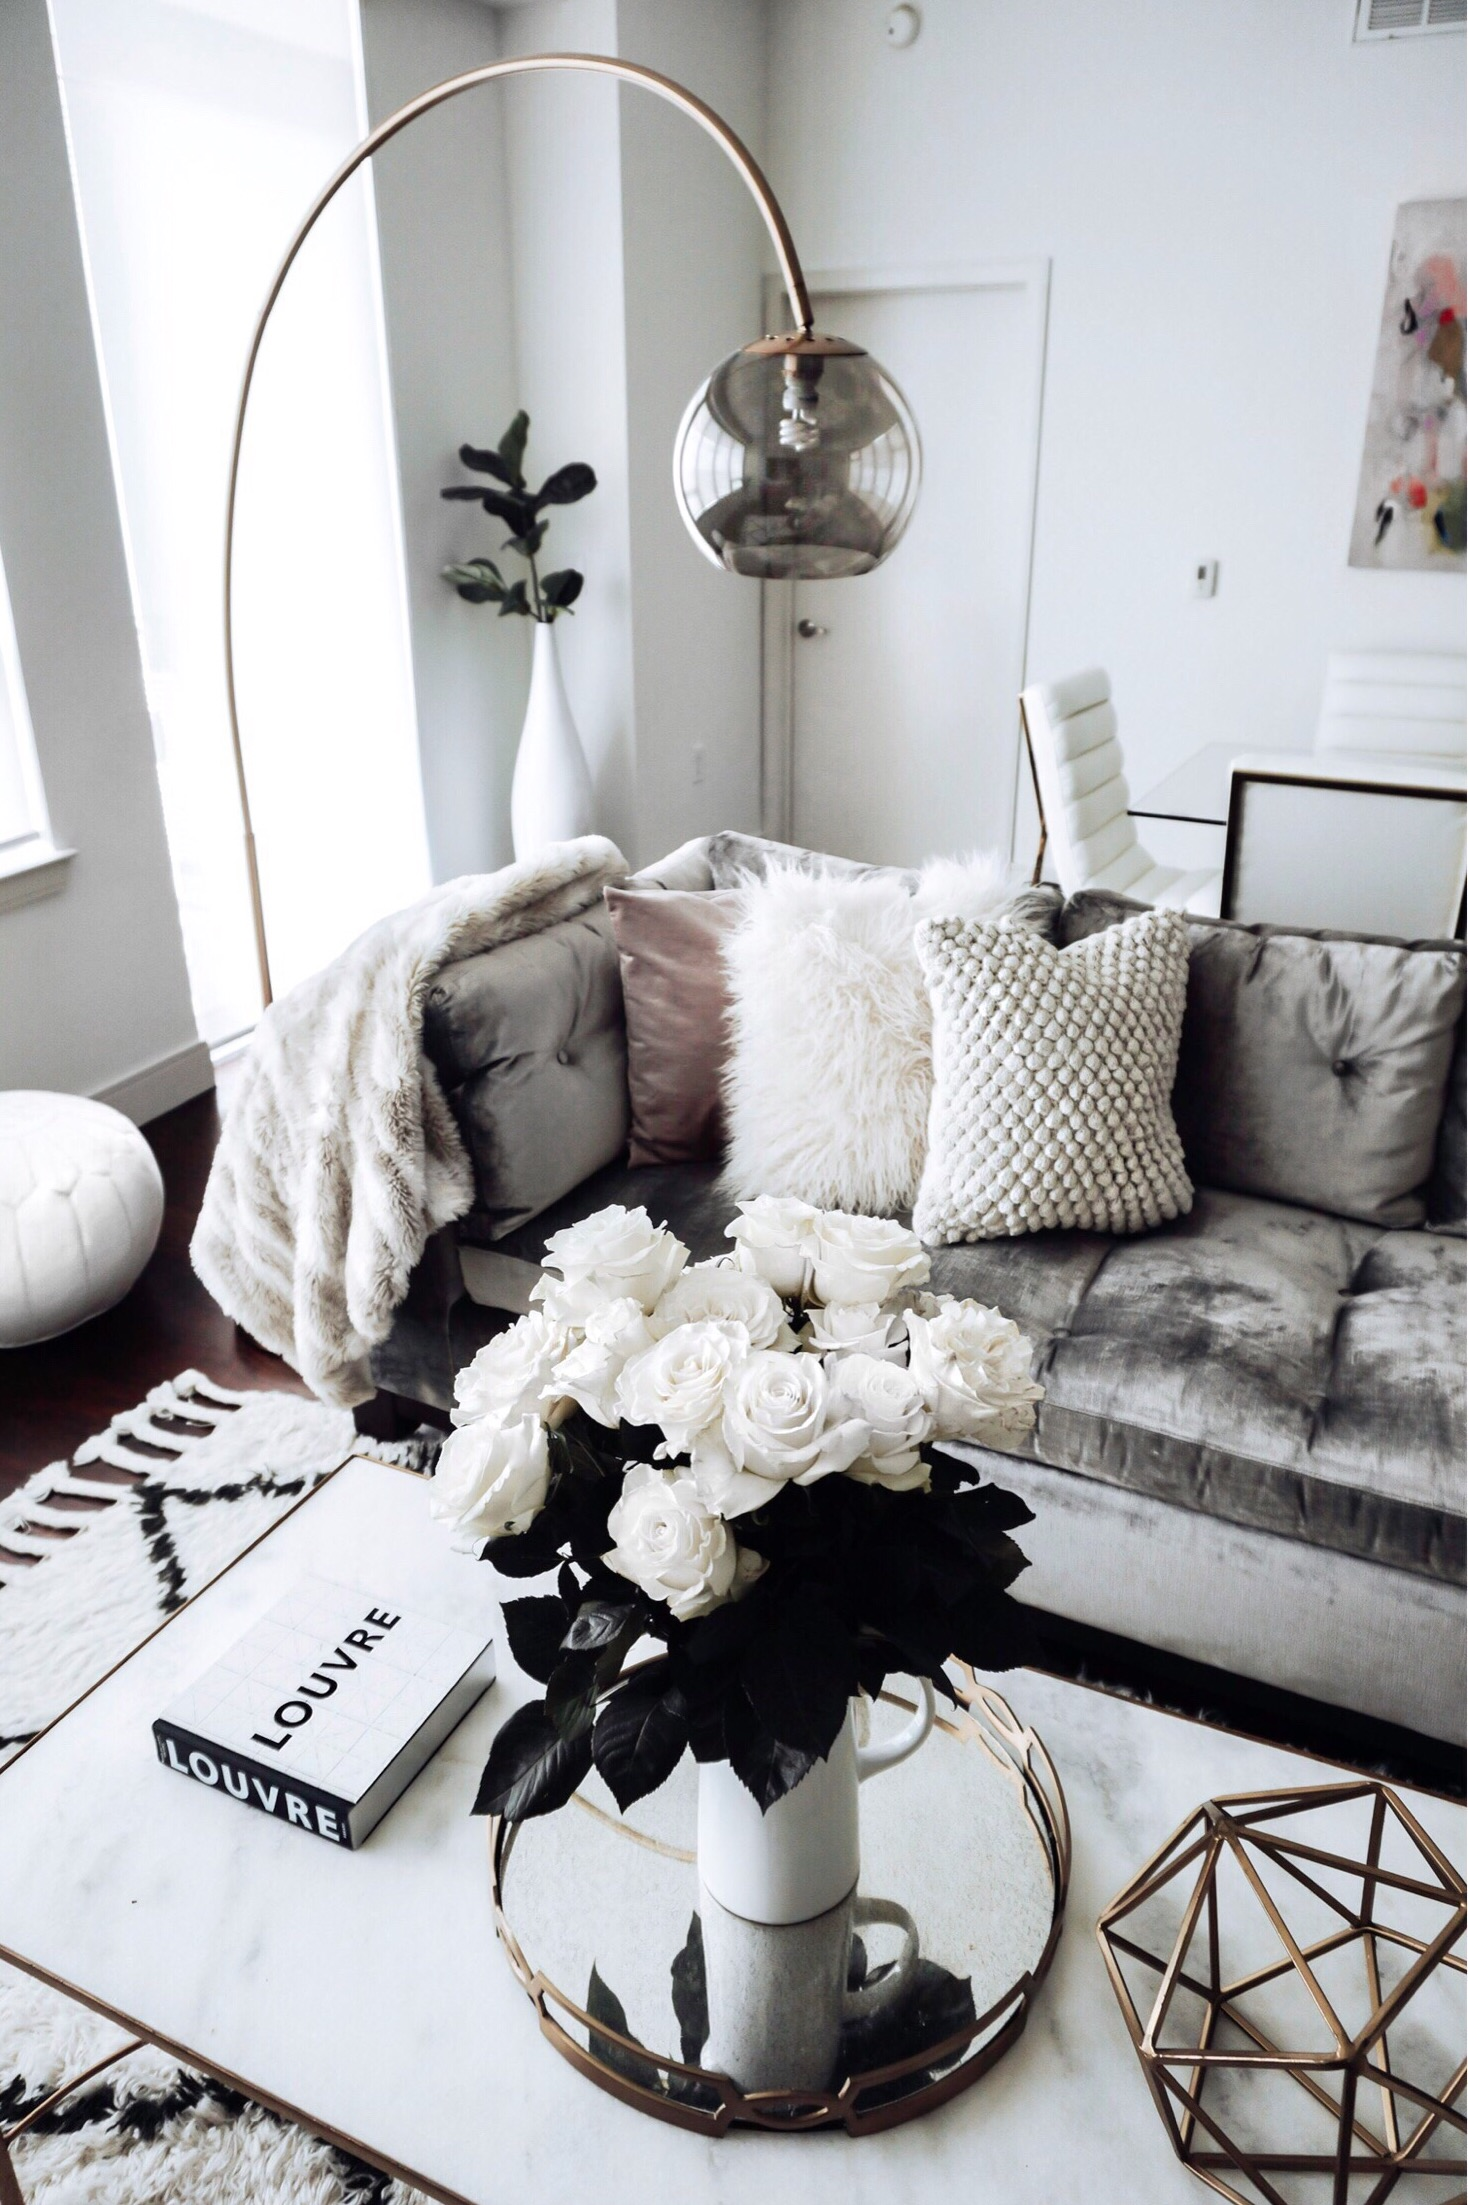 Friday feels |Finally getting back into the swing of posting more home decor! I'm excited to start planning holiday content and will be sure to get that out a little early to give you guys plenty of inspiration! White pitcher |home decor blog | Scandinavian interiors | Pillows here, here, and here | Lamp | Rug | white leather pouf